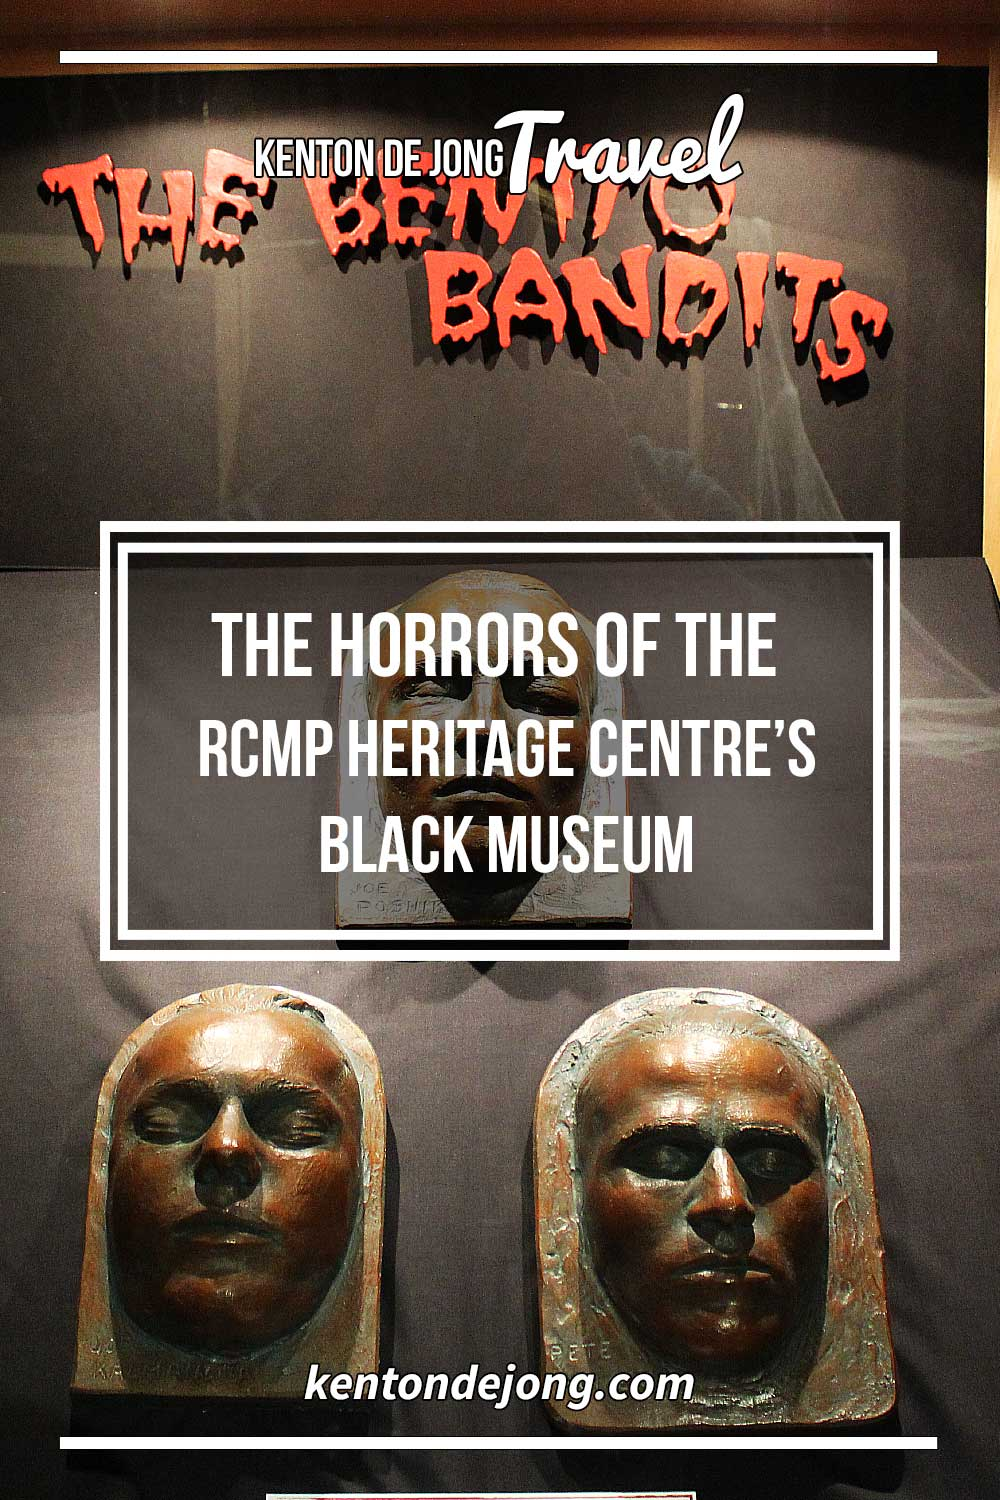 The Horrors of the RCMP Heritage Centre's Black Museum